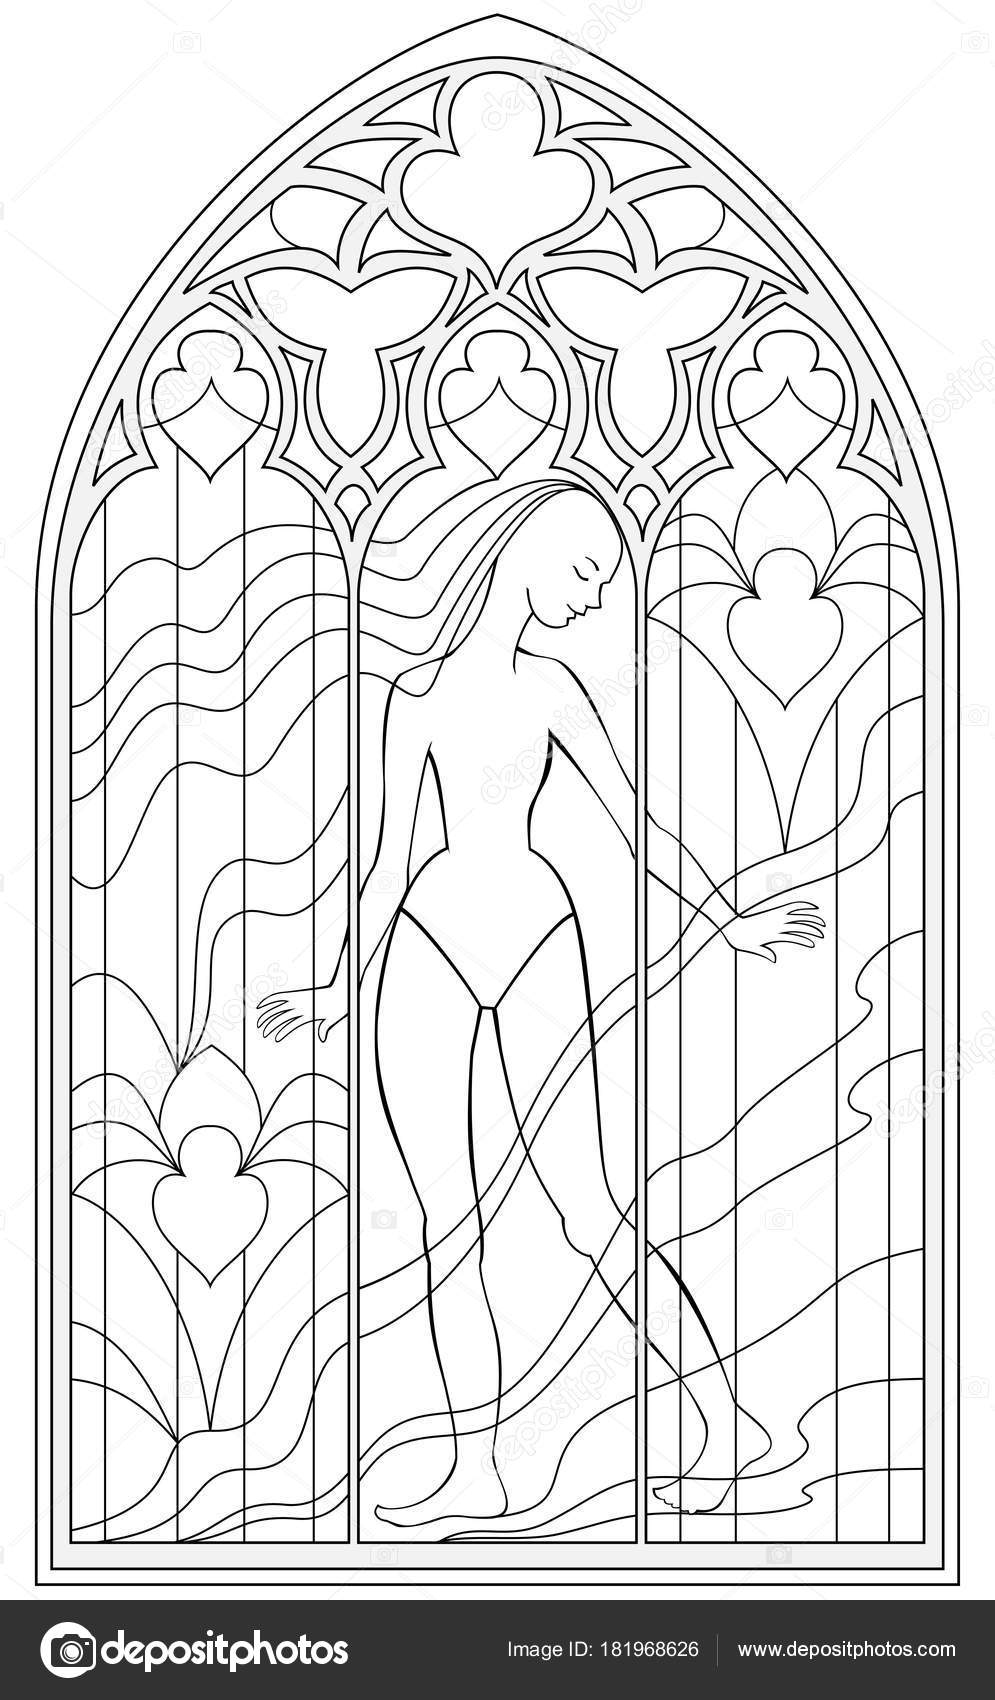 Black And White Page For Coloring Fantasy Drawing Of Beautiful Gothic Windows With Stained Glass In Medieval Style Worksheet Children Adults